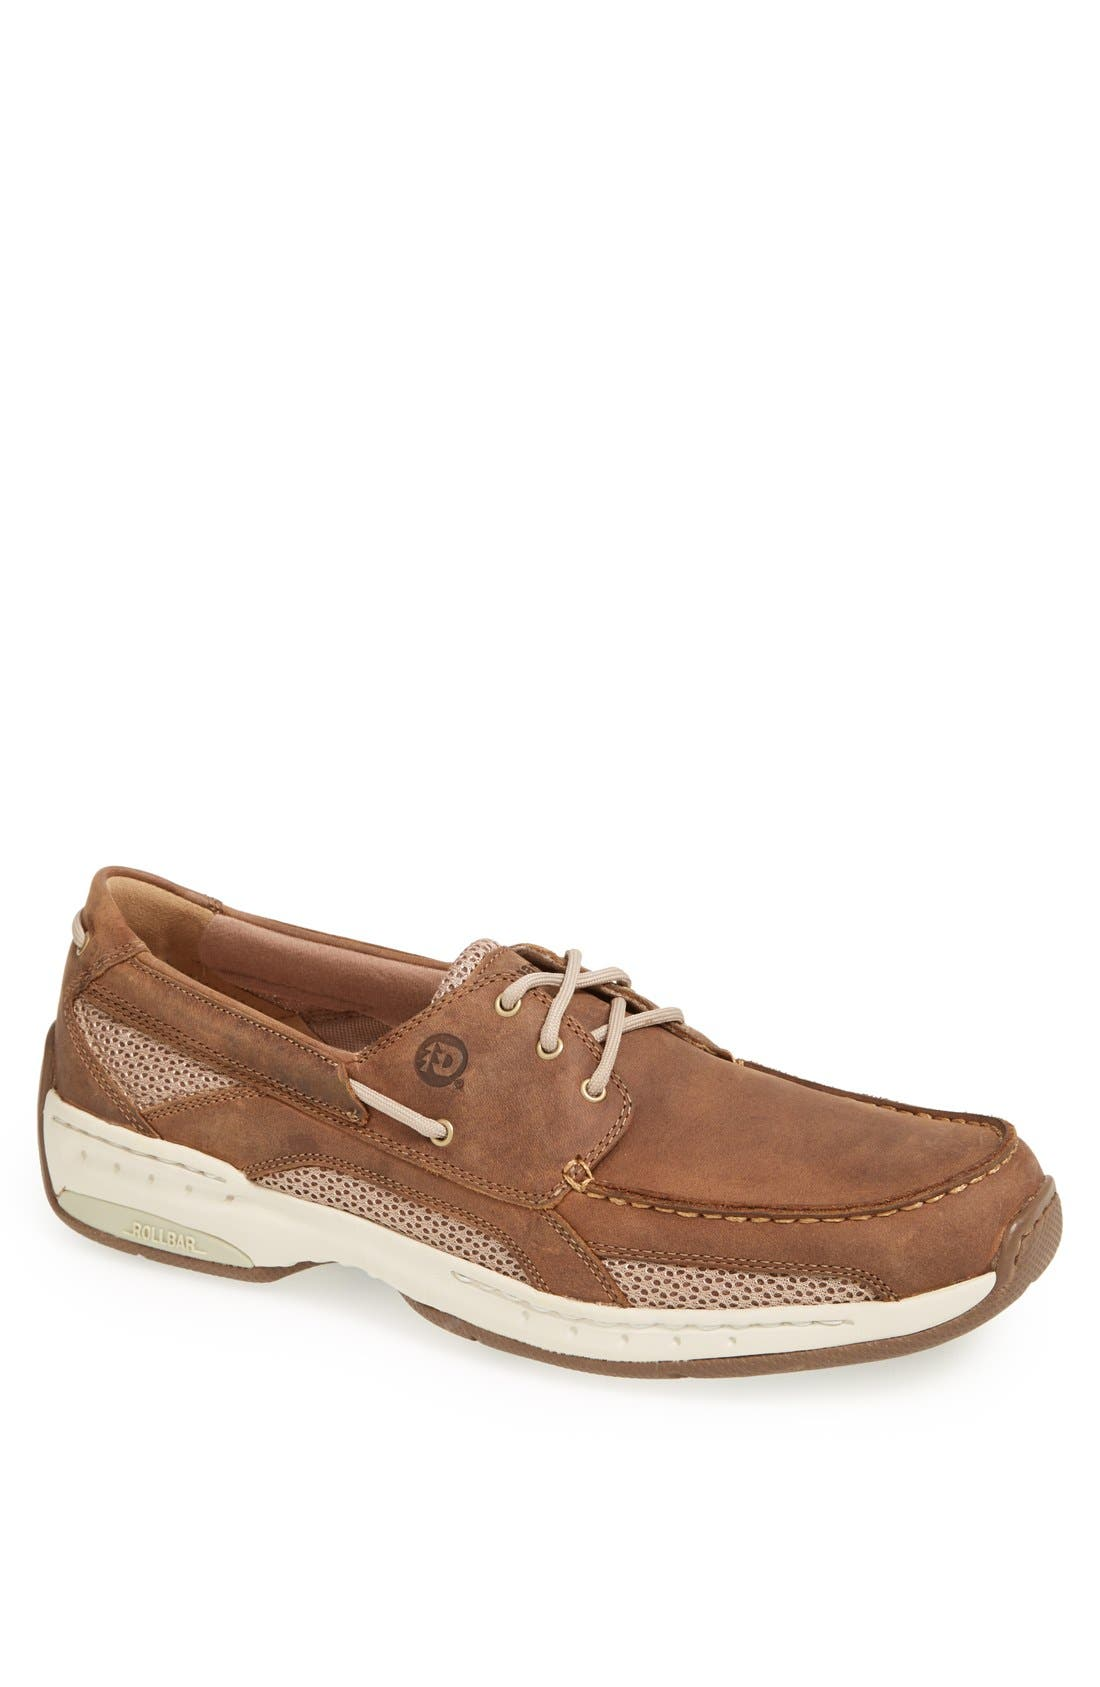 'Captain' Boat Shoe,                         Main,                         color, TAN